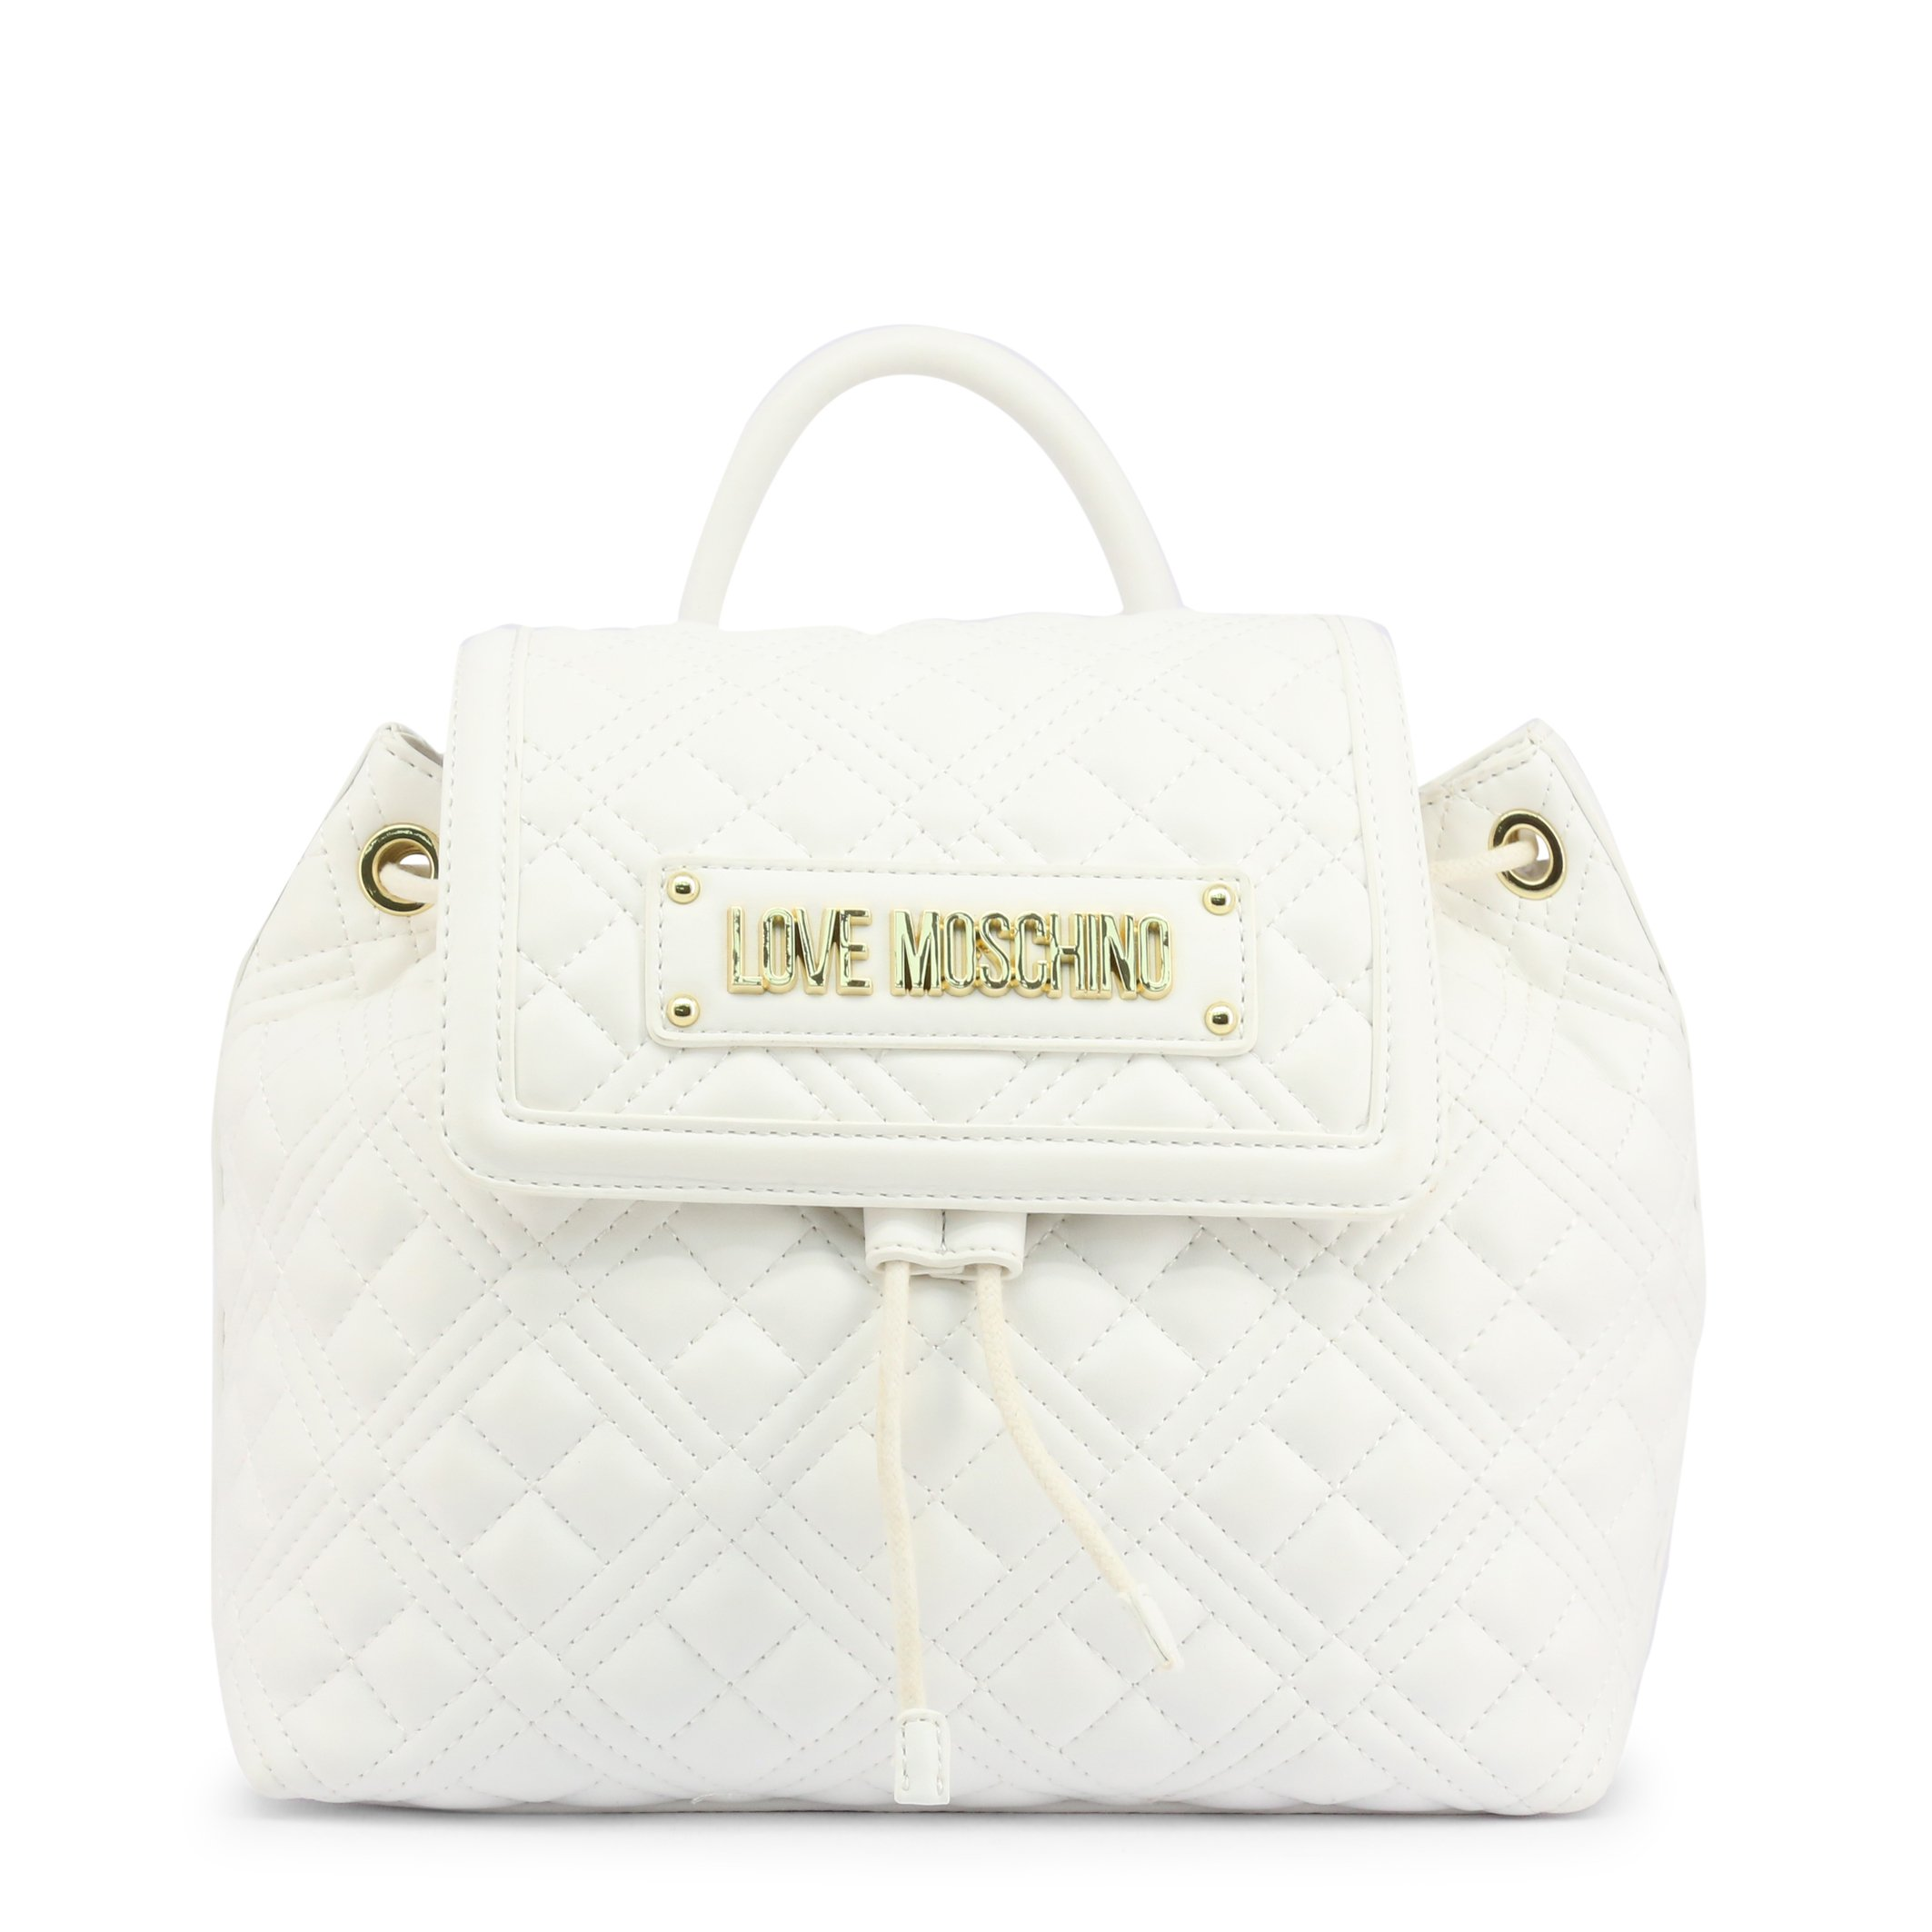 Love Moschino Women's Backpack Pink JC4009PP1CLA0 - white NOSIZE